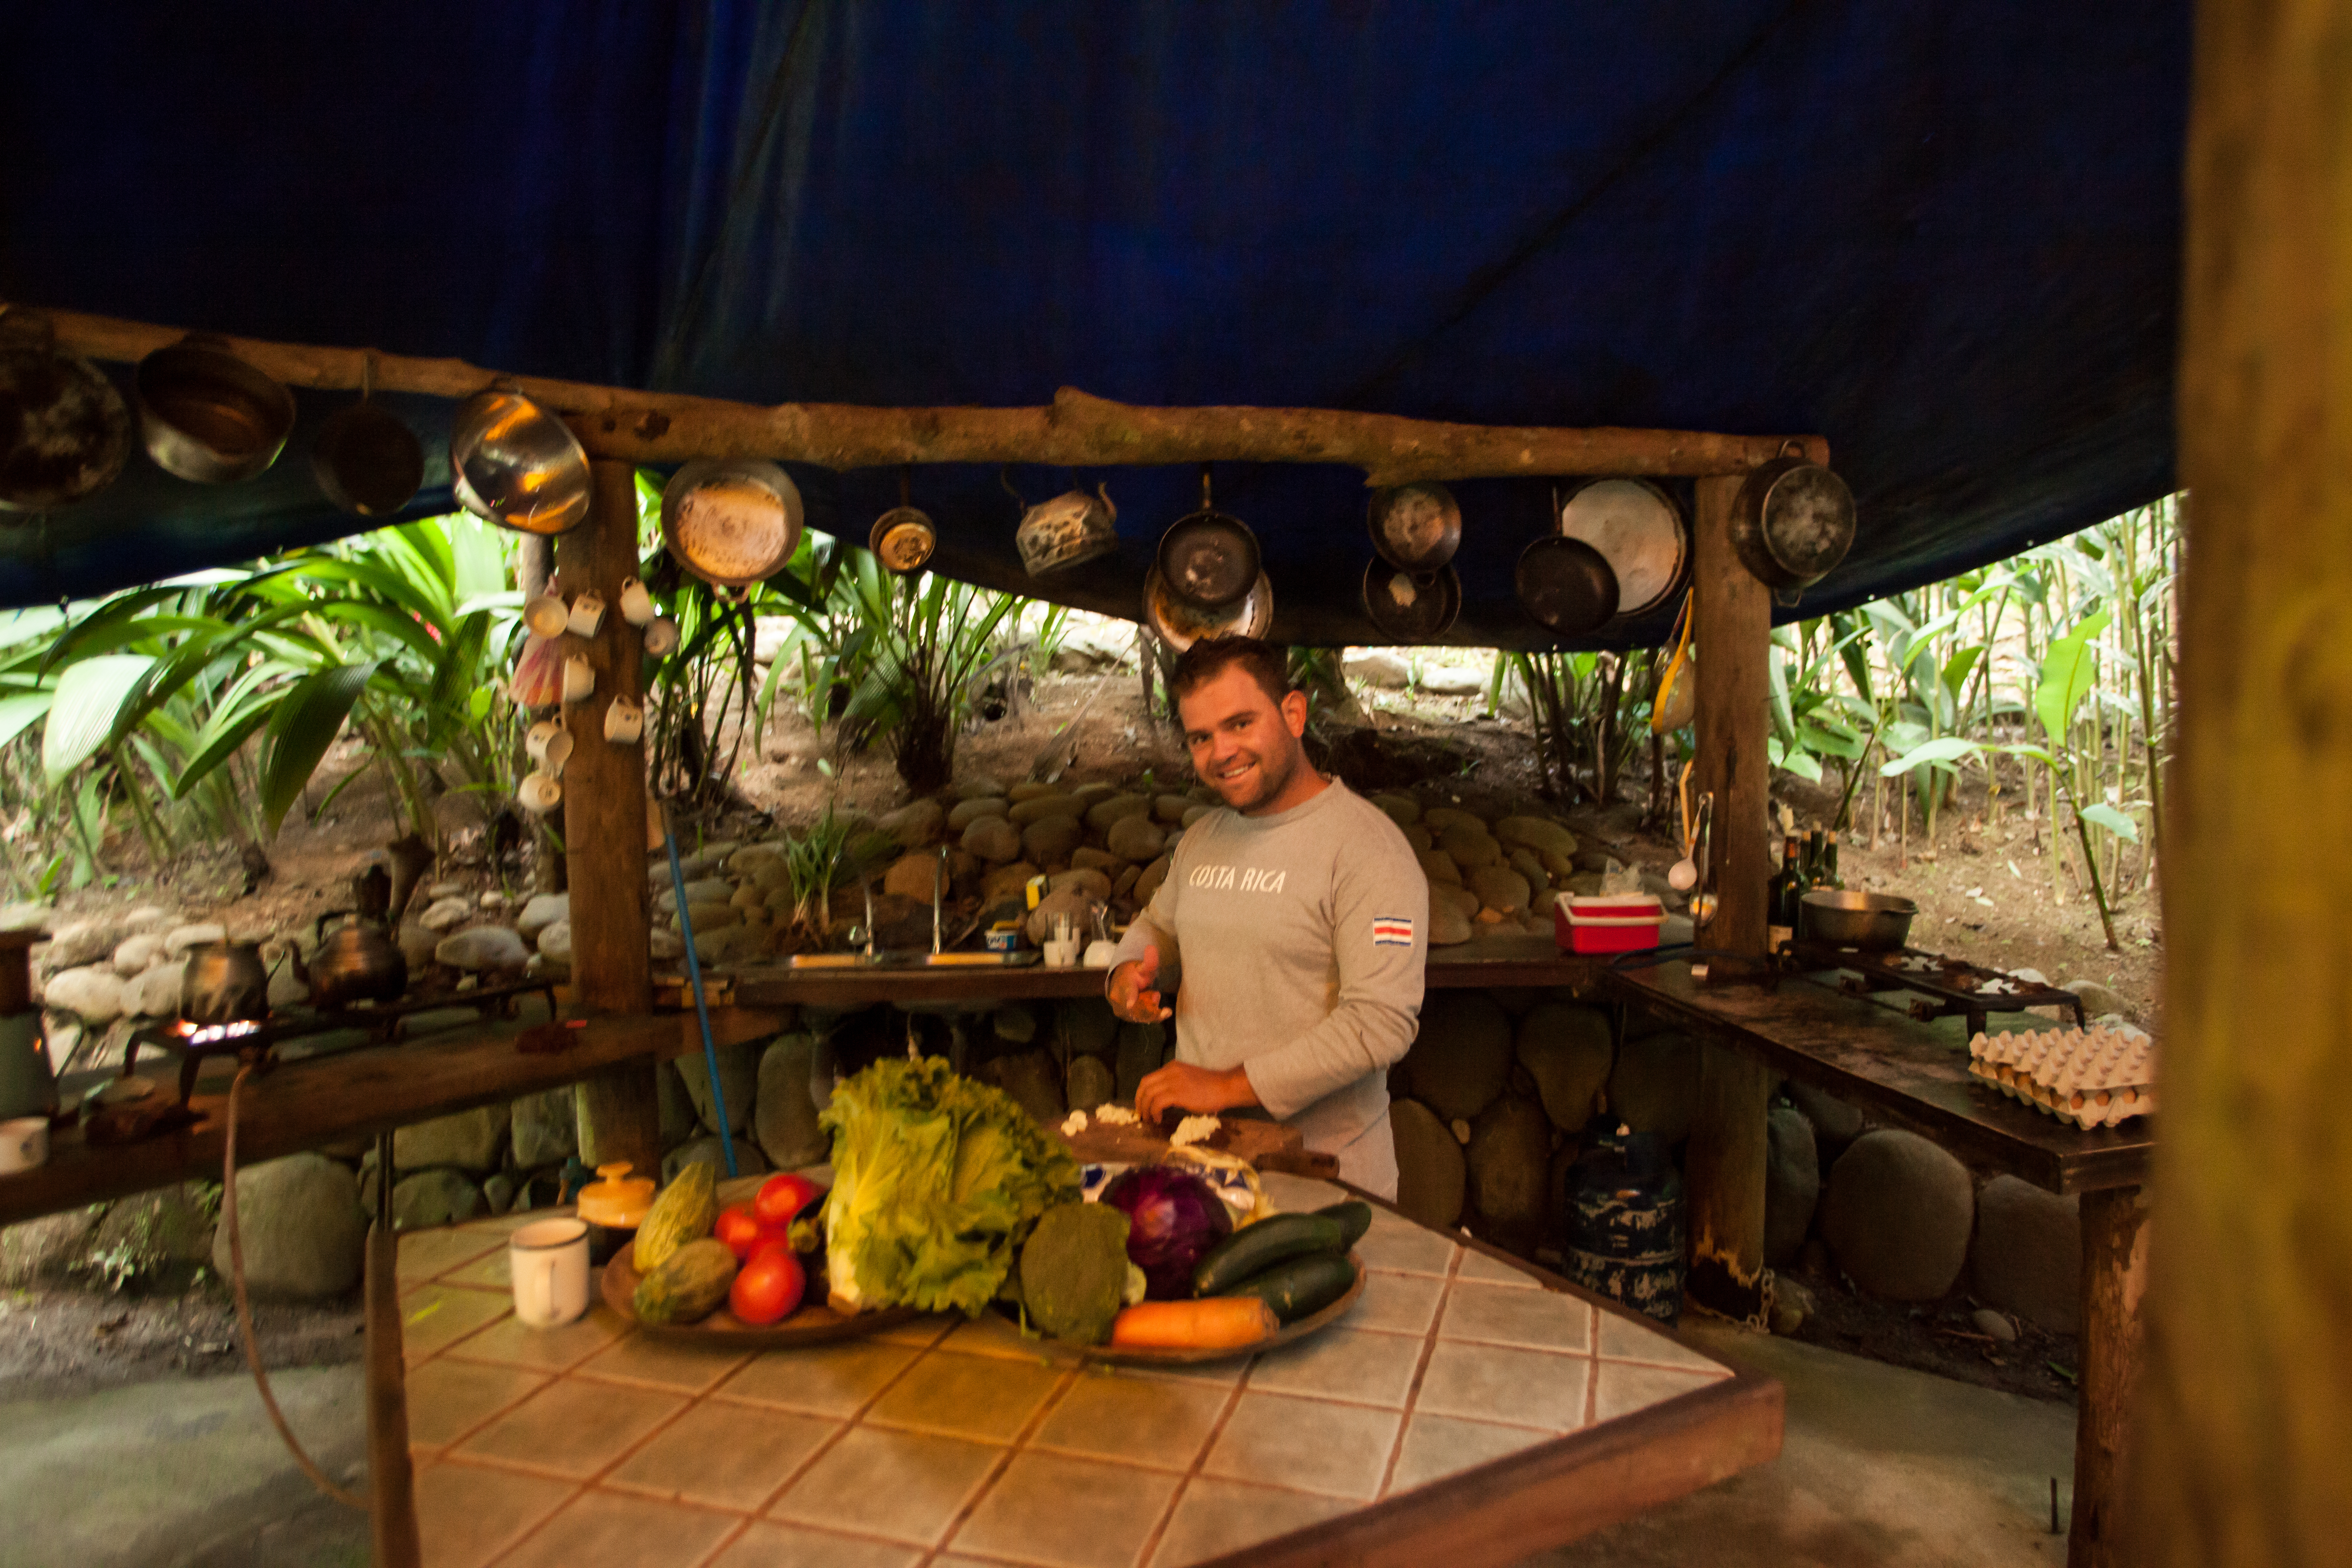 Guide behnd counter in jungle kitchen